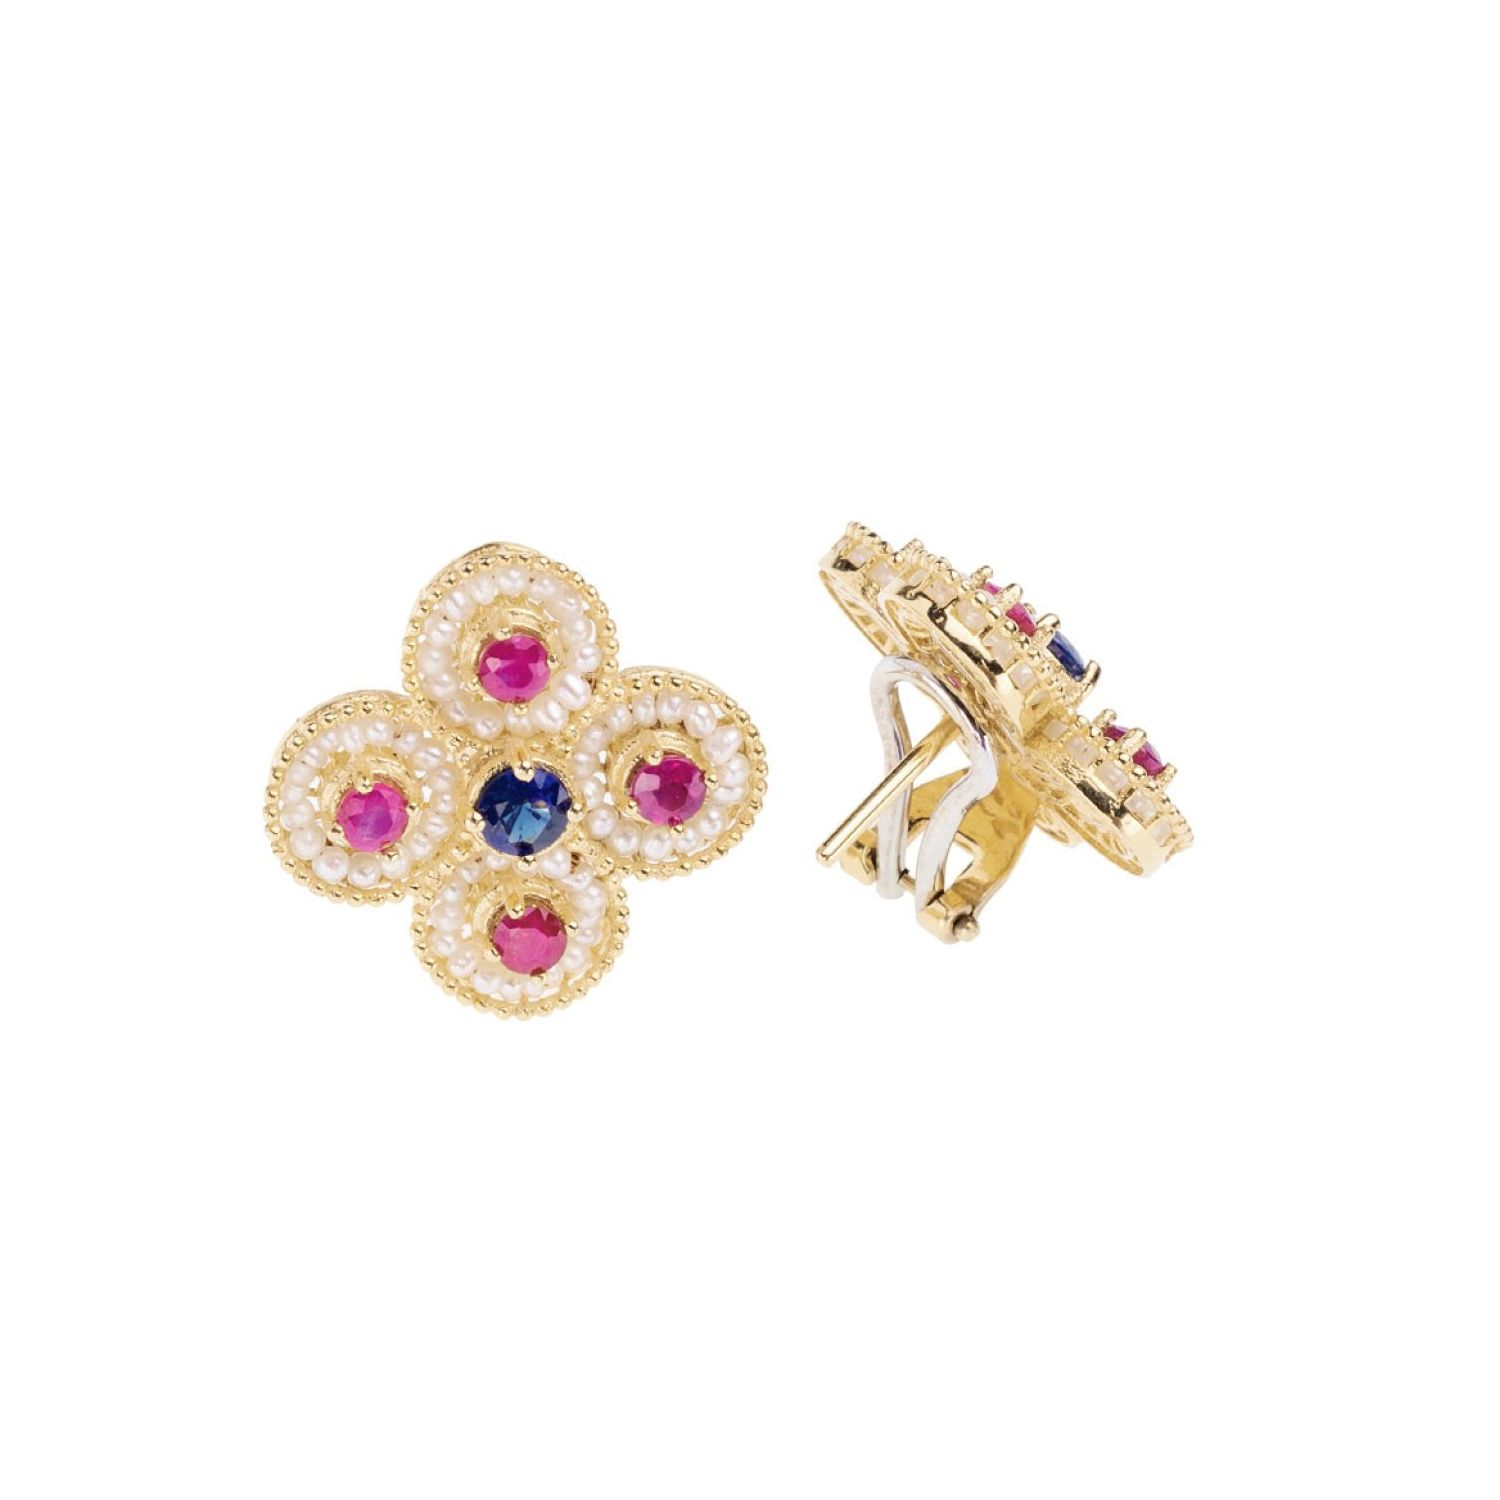 Gold Lobe Earrings with Pearls and precious Stones (14235)